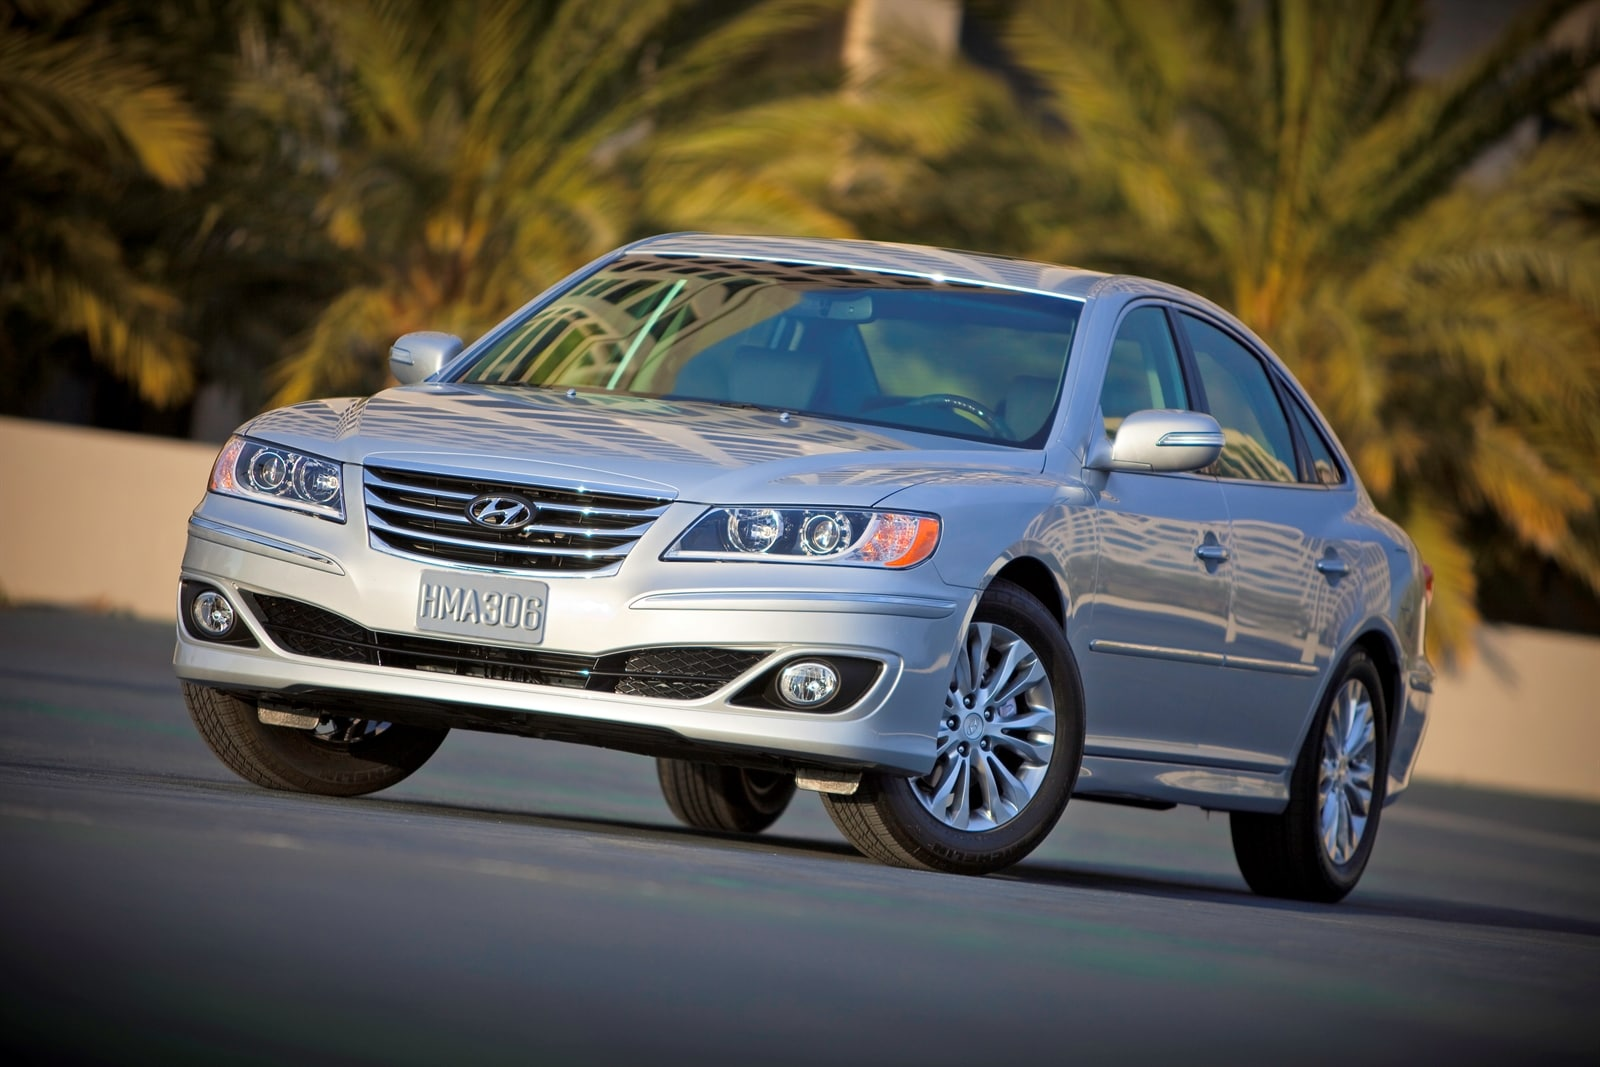 hyundai rating seat coolers motor and trend warmers cars azera reviews